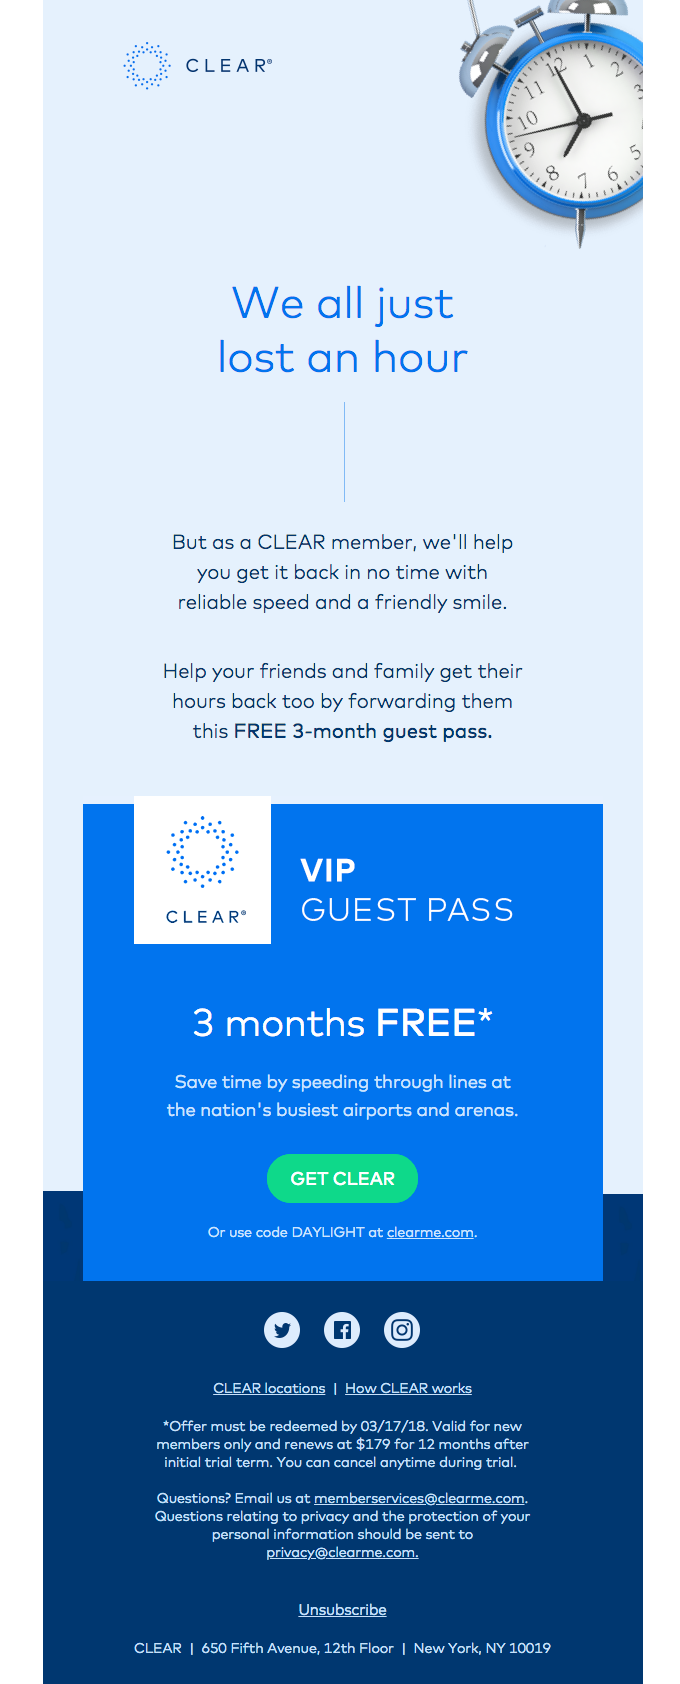 Your exclusive guest pass